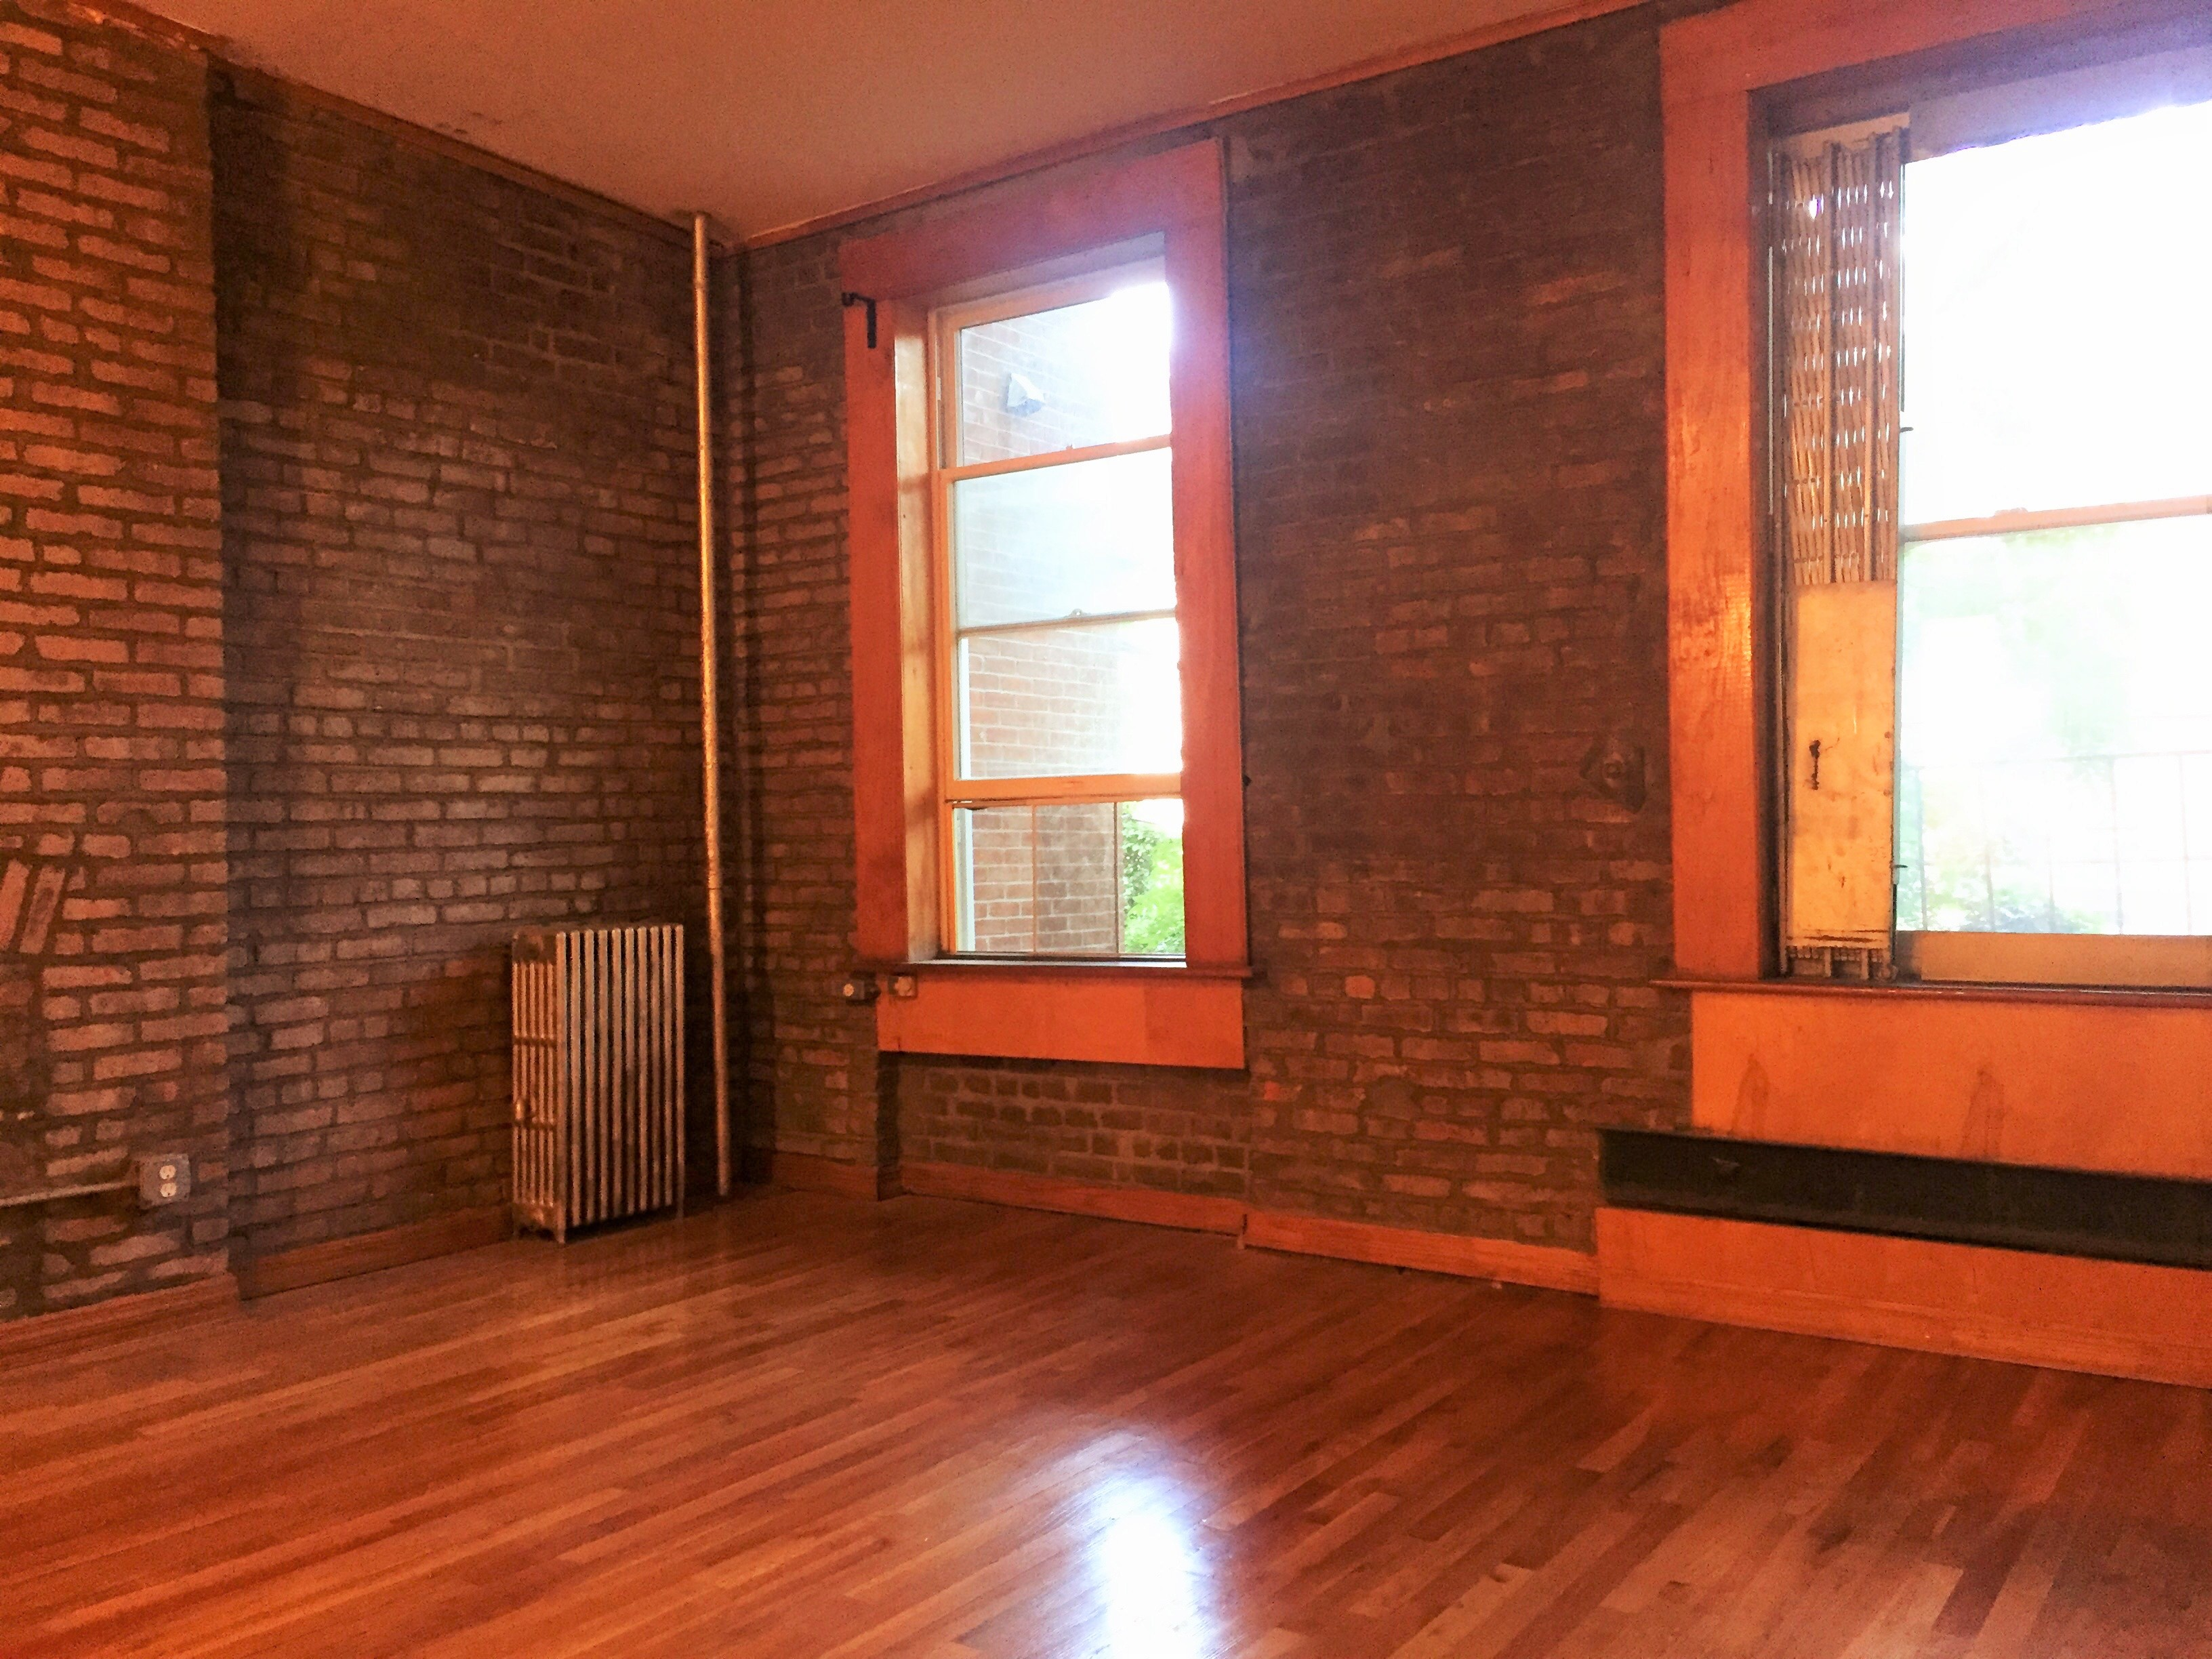 475 Hicks Street, Apt #2R, Brooklyn, New York 11231